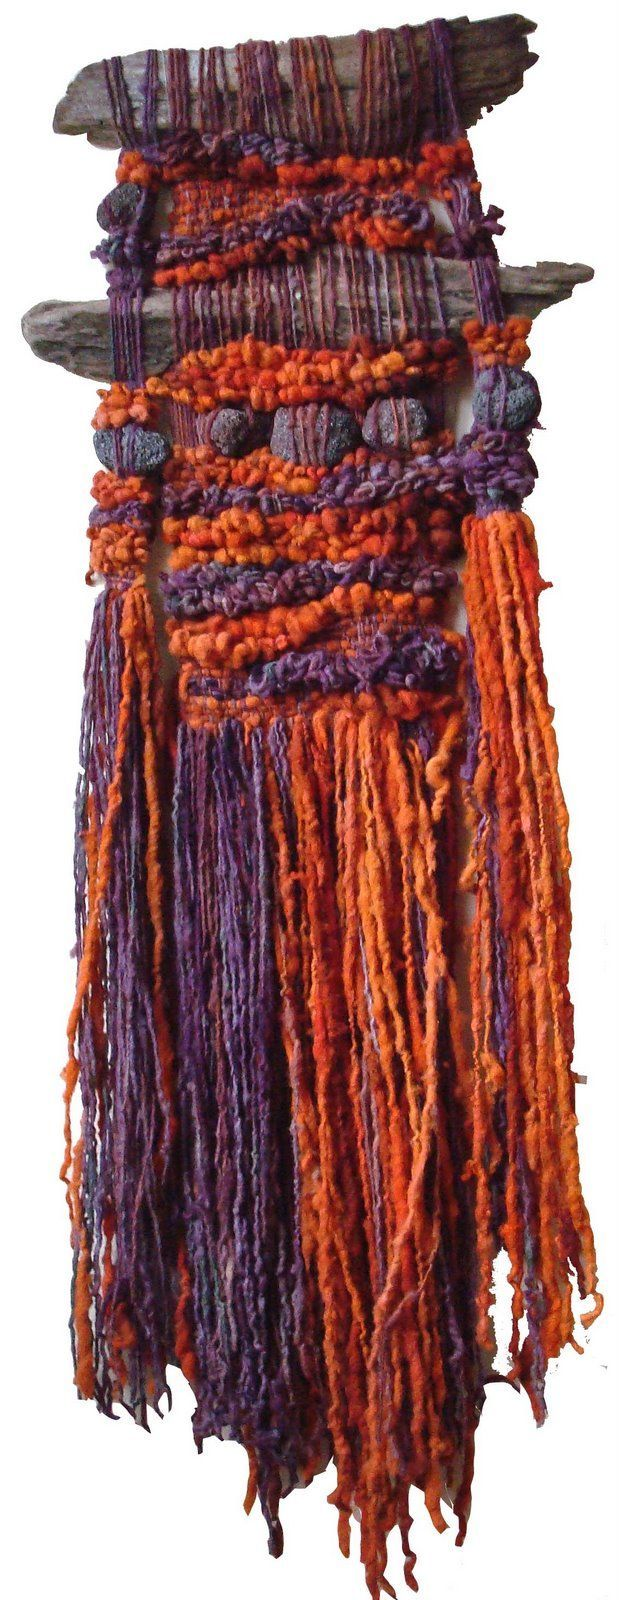 Arte Textil Marianne Werkmeister>>>M.Taylor: This looks a lot like the type of weavings I did in high school,sure wish I'd saved at least one thing, but sold most the good ones to mu art teachers and art neighbors, now I know why they wanted them so much!